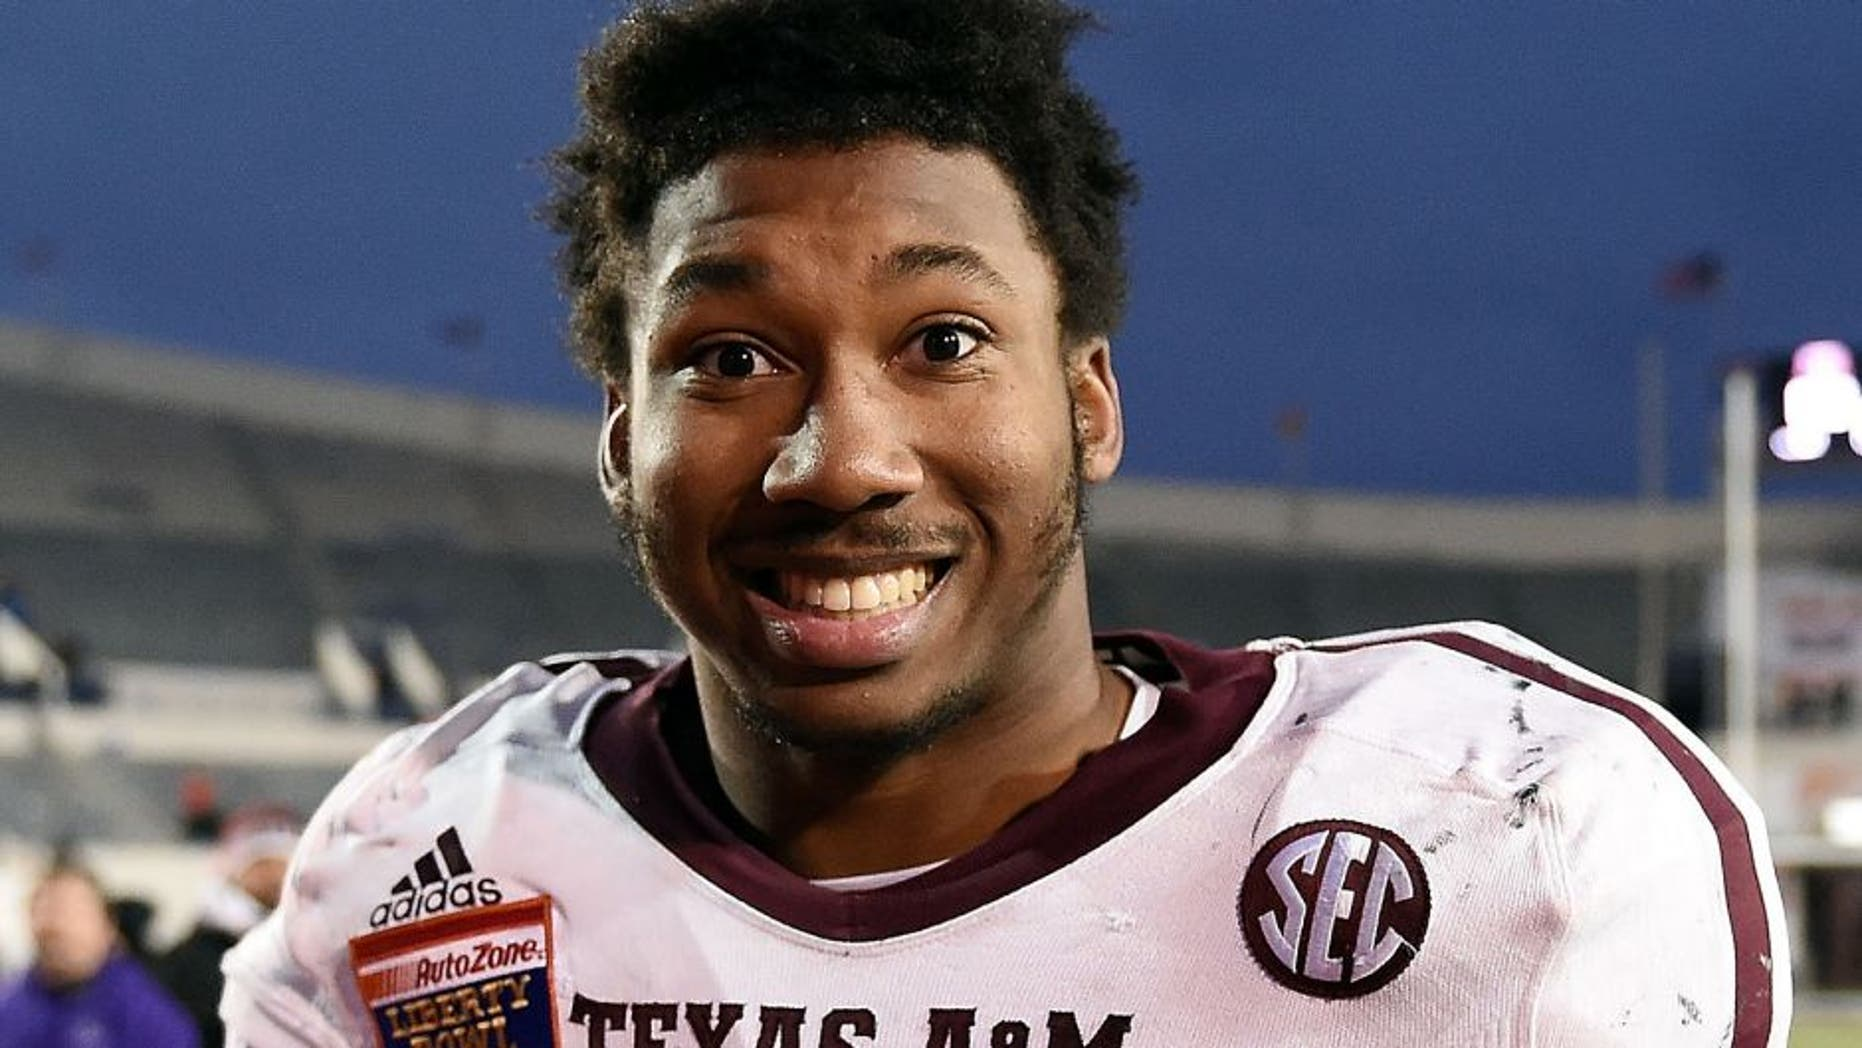 MEMPHIS, TN - DECEMBER 29: Myles Garrett #15 of the Texas A&M Aggies leaves the field following a victory over the West Virginia Mountaineers in the 56th annual Autozone Liberty Bowl at Liberty Bowl Memorial Stadium on December 29, 2014 in Memphis, Tennessee. Texas A&M won the game 45-37. (Photo by Stacy Revere/Getty Images)